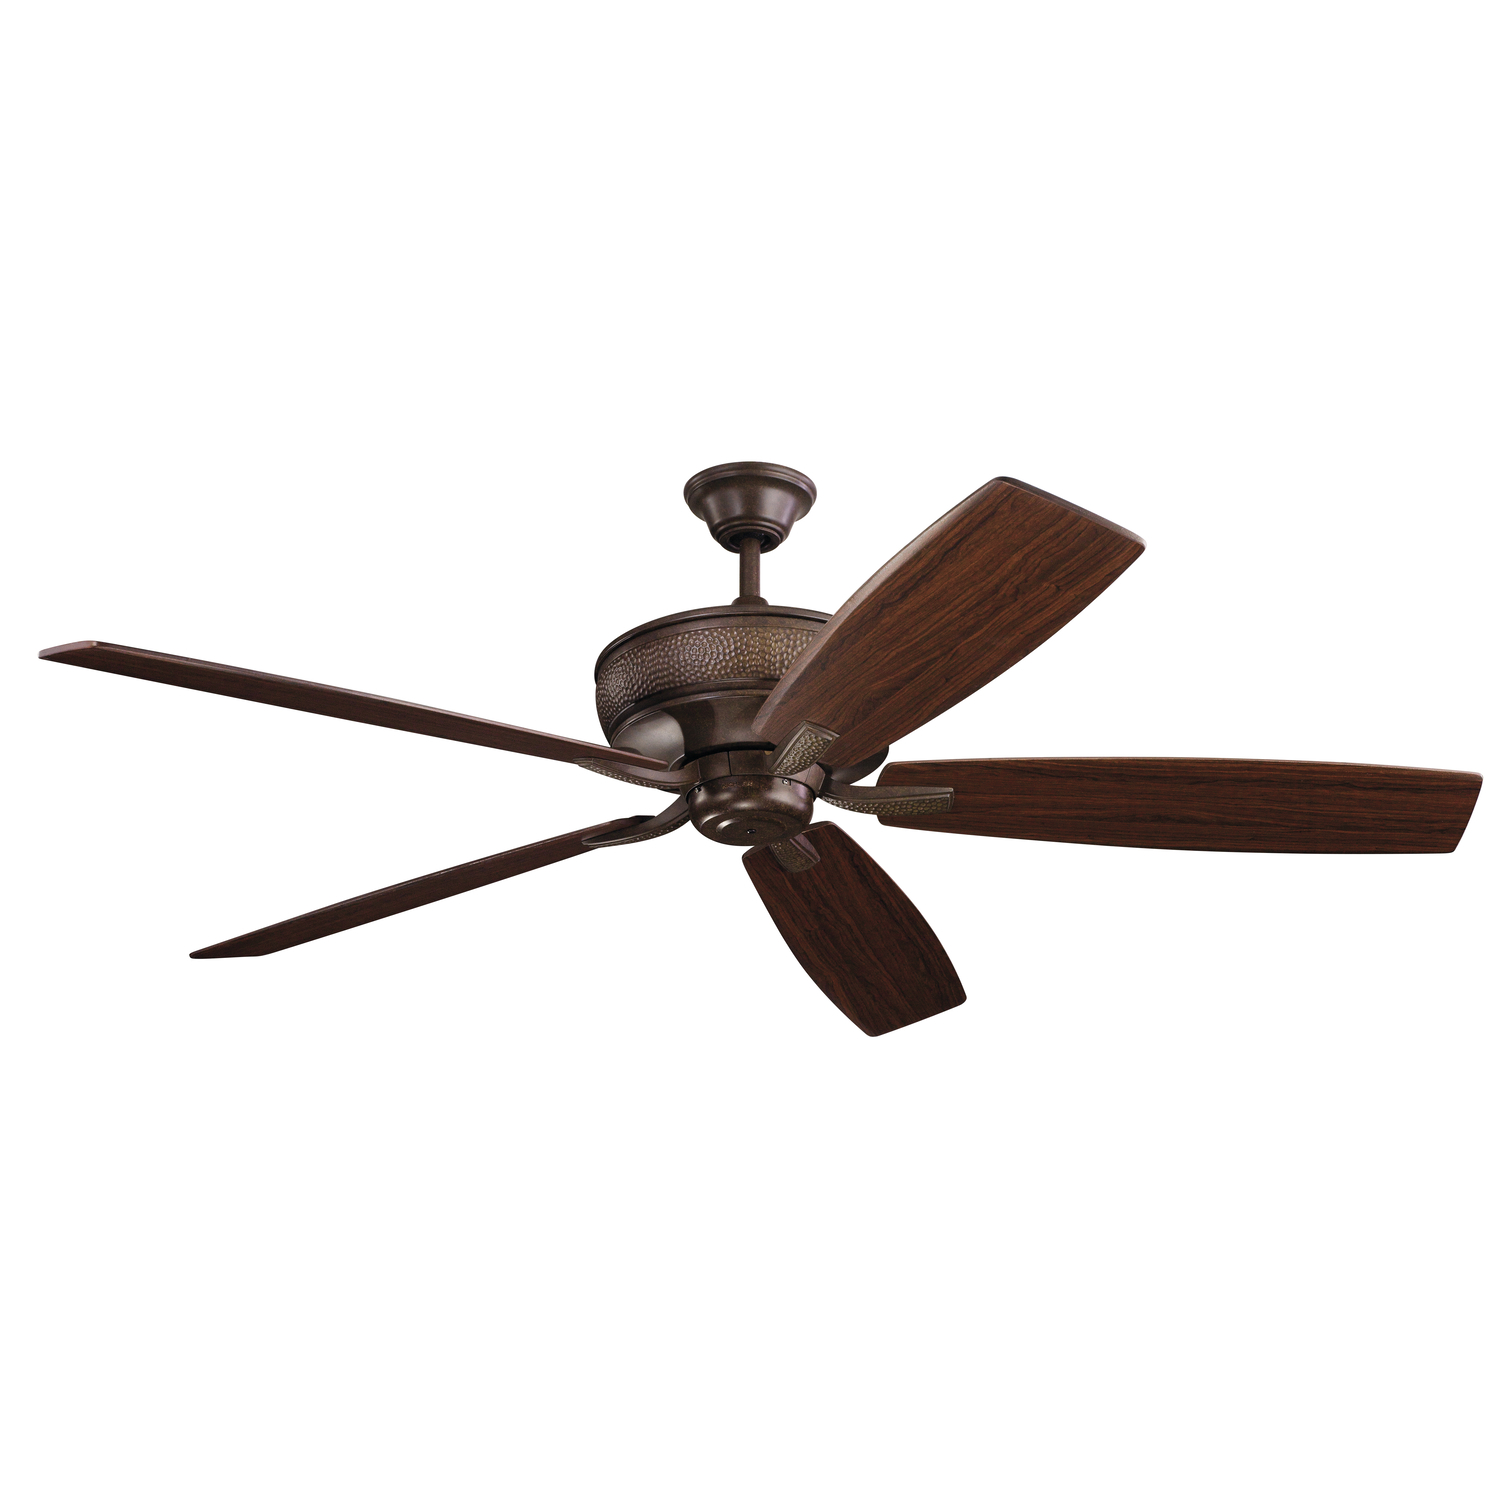 70 inchCeiling Fan from the Monarch collection by Kichler 300206TZ